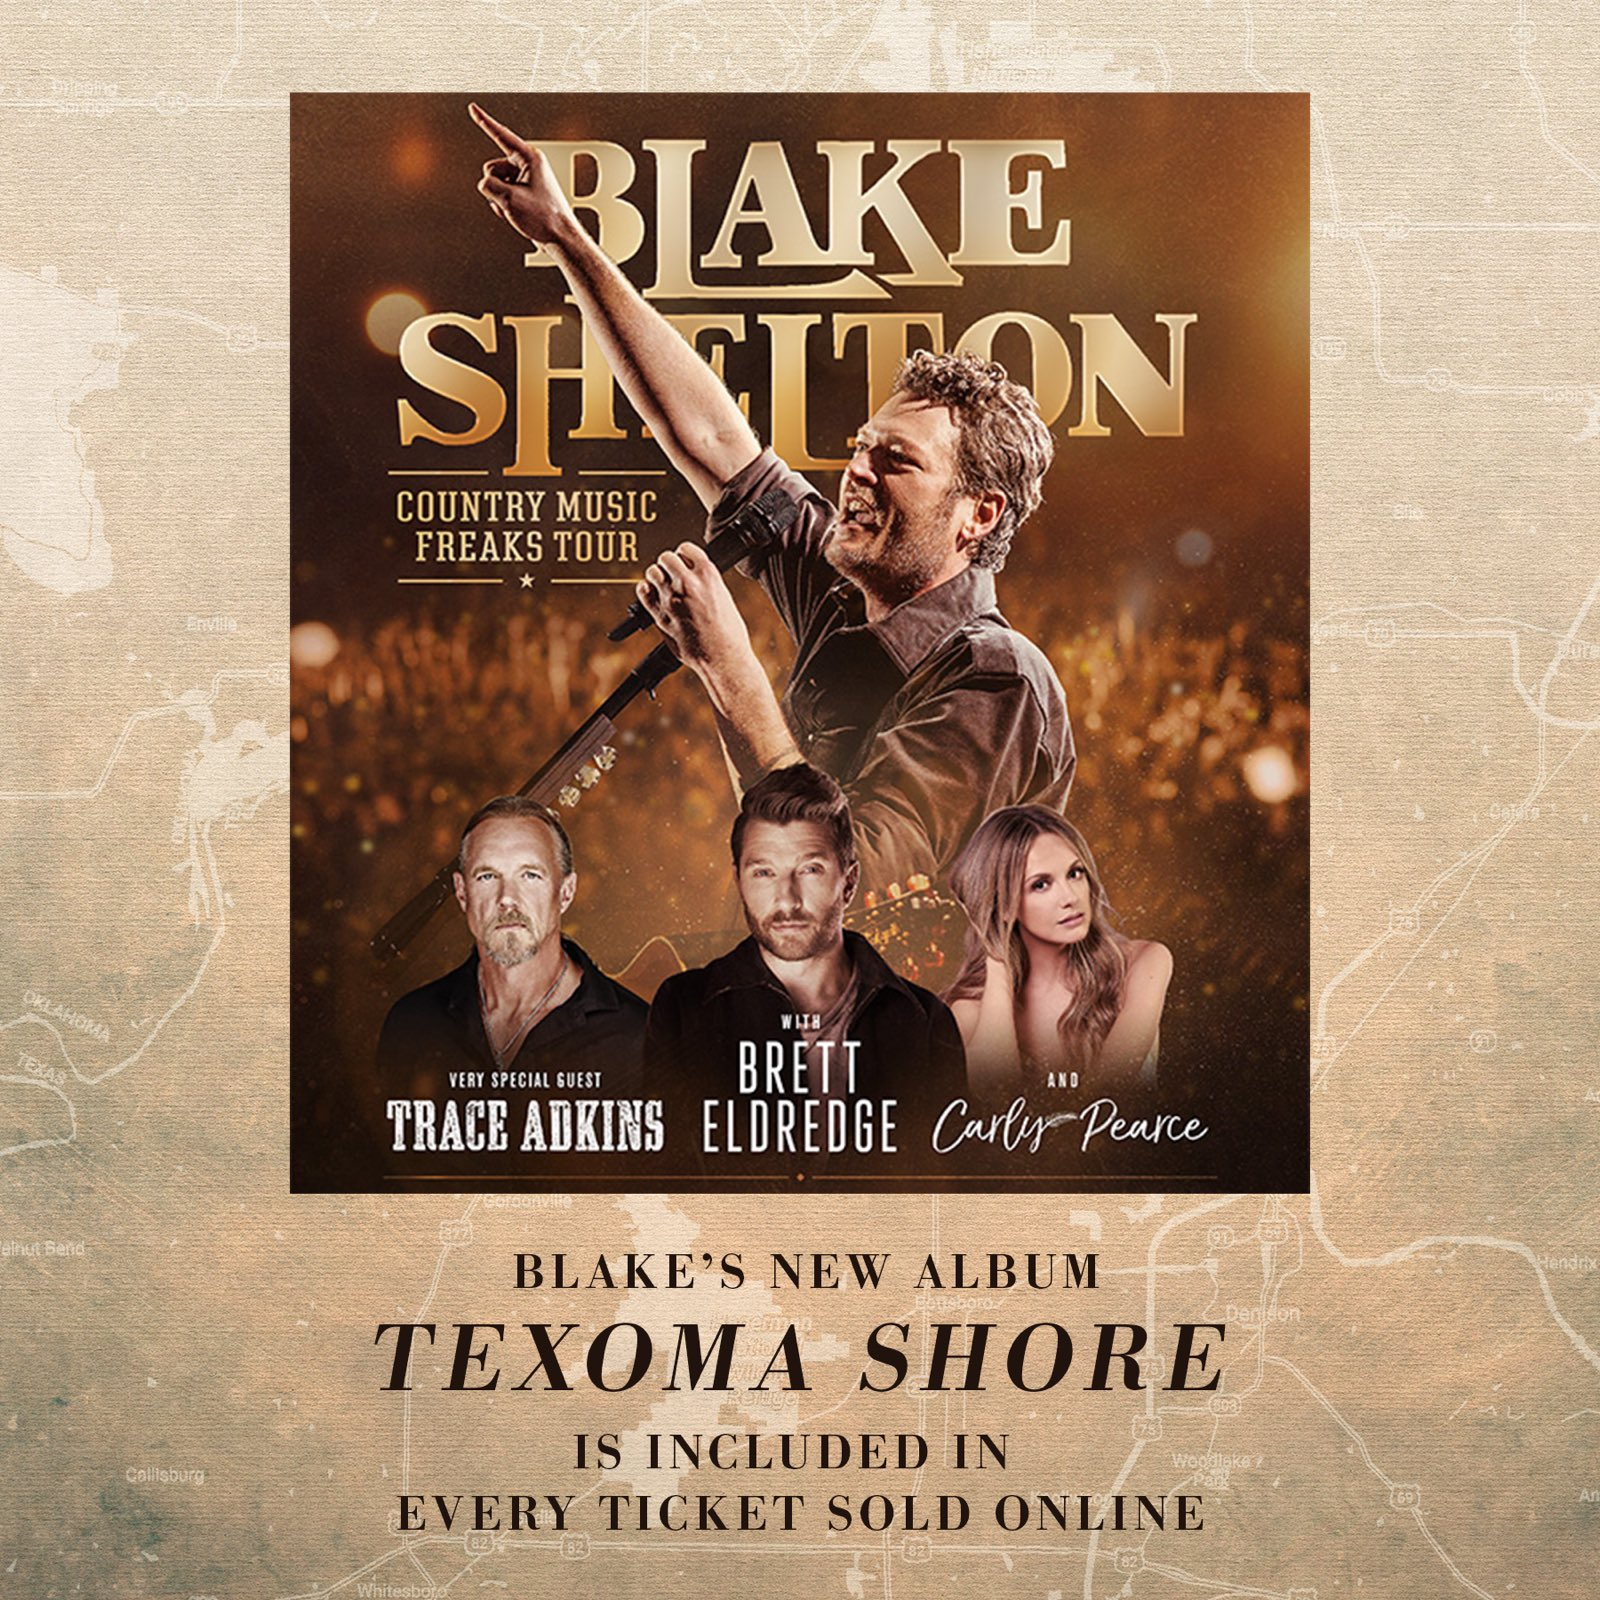 Don't forget to redeem your copy of #TexomaShore if you've got presale tickets to the Country Music Freaks Tour! https://t.co/8wPCd3IM81